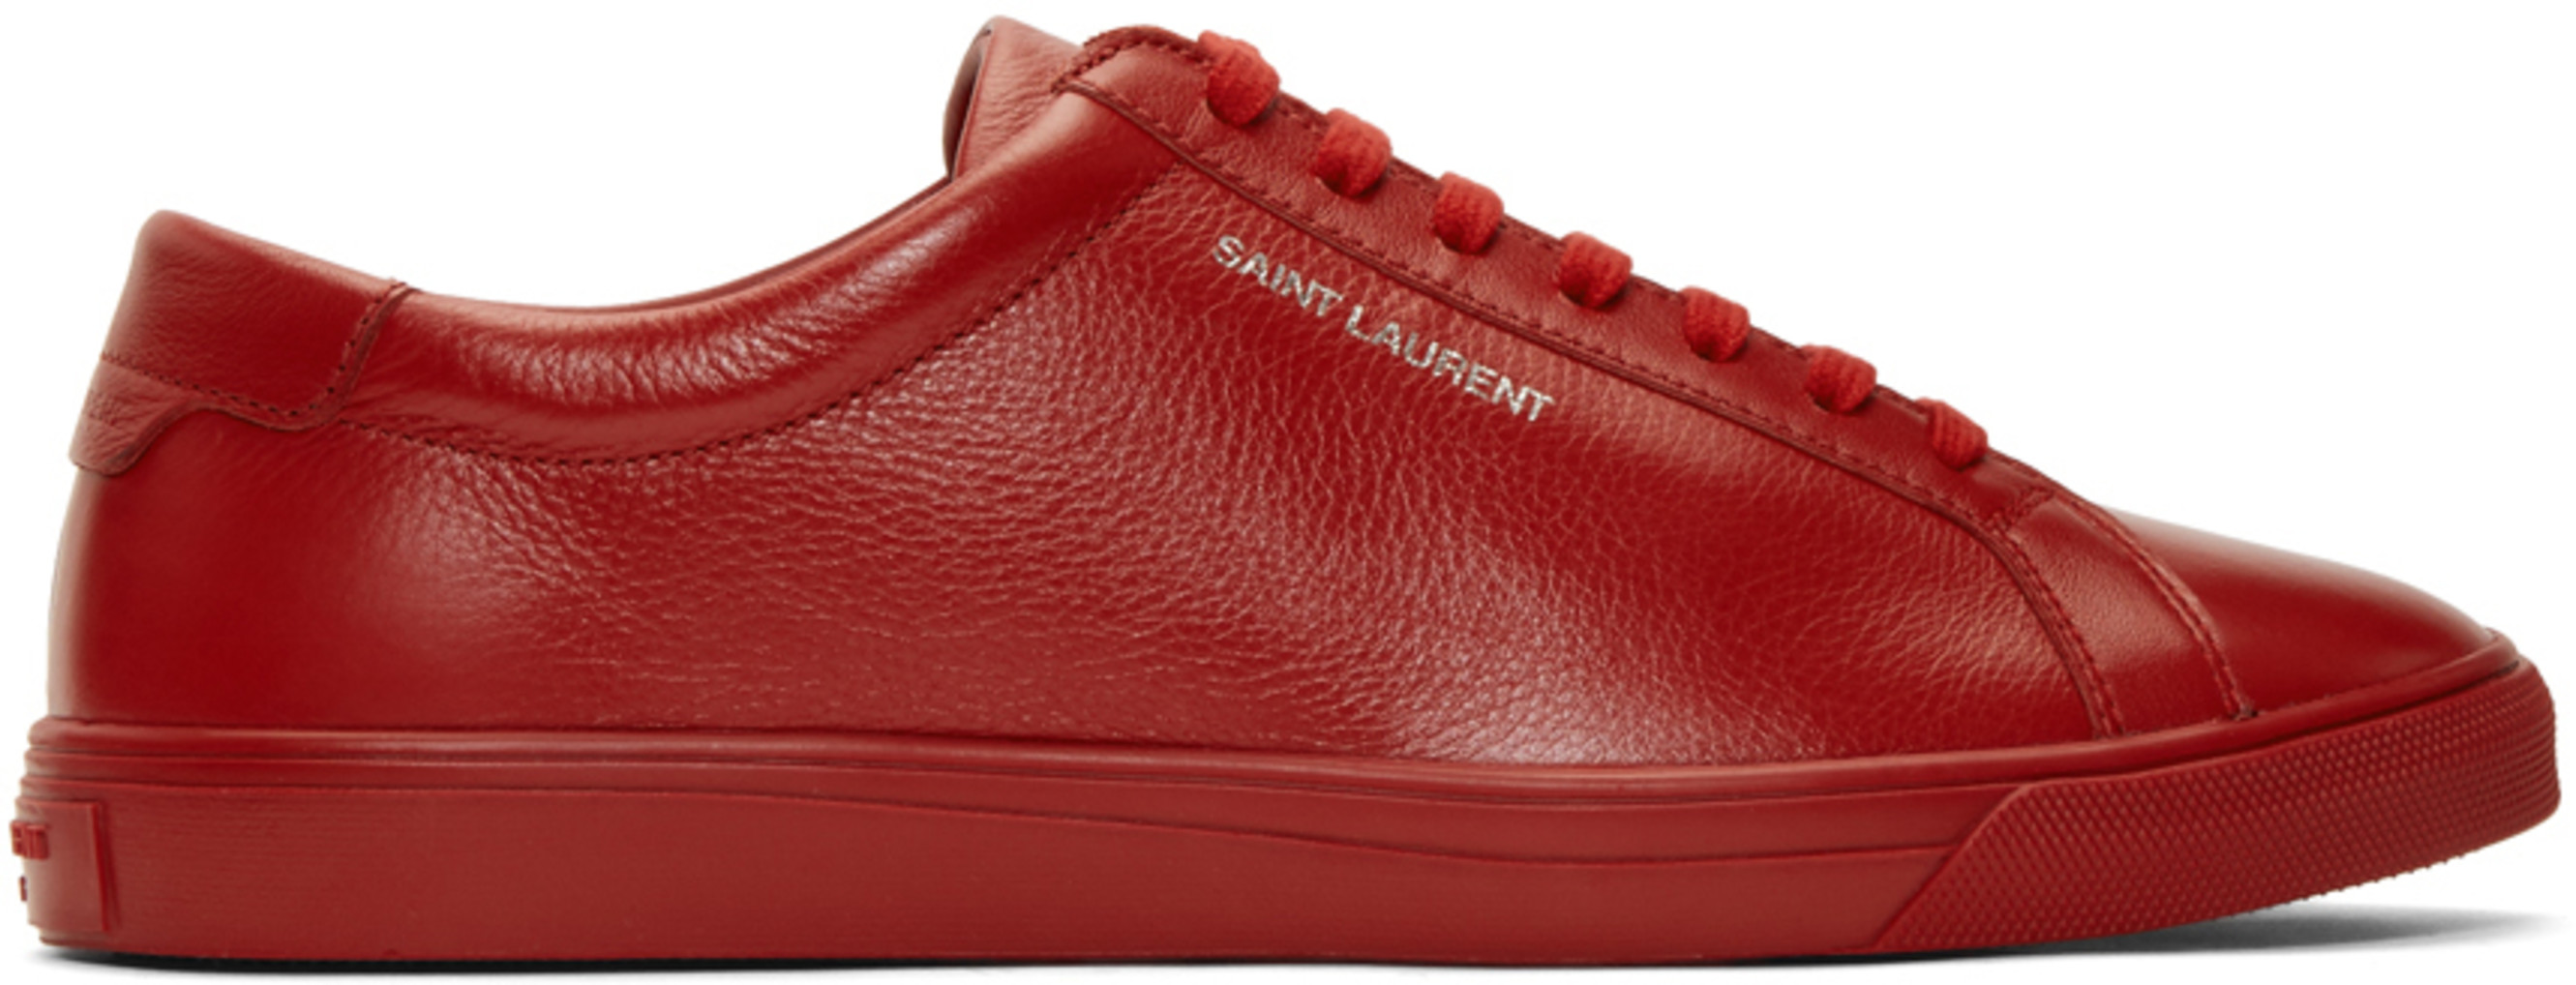 19c5f3aa2c2 Red Andy Sneakers